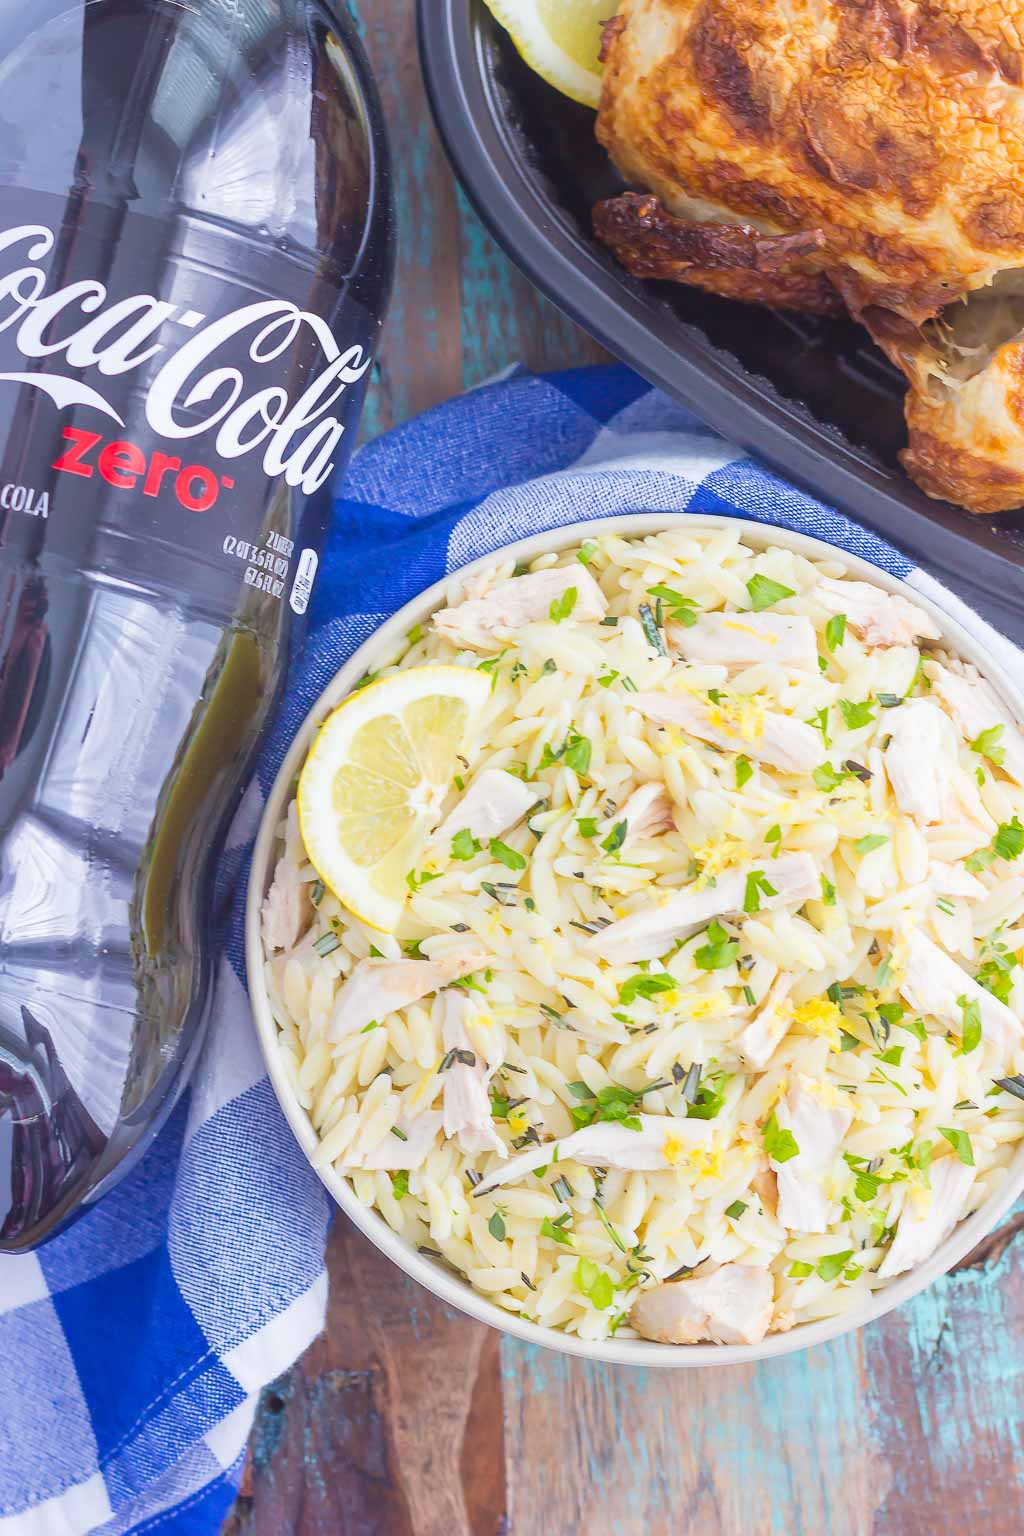 This Lemon Herb Orzo with Chicken is a simple dish that's ready in less than 30 minutes. Packed with shredded chicken, rosemary, thyme, and lemon, this pasta is loaded with flavor and perfect for a summer meal!